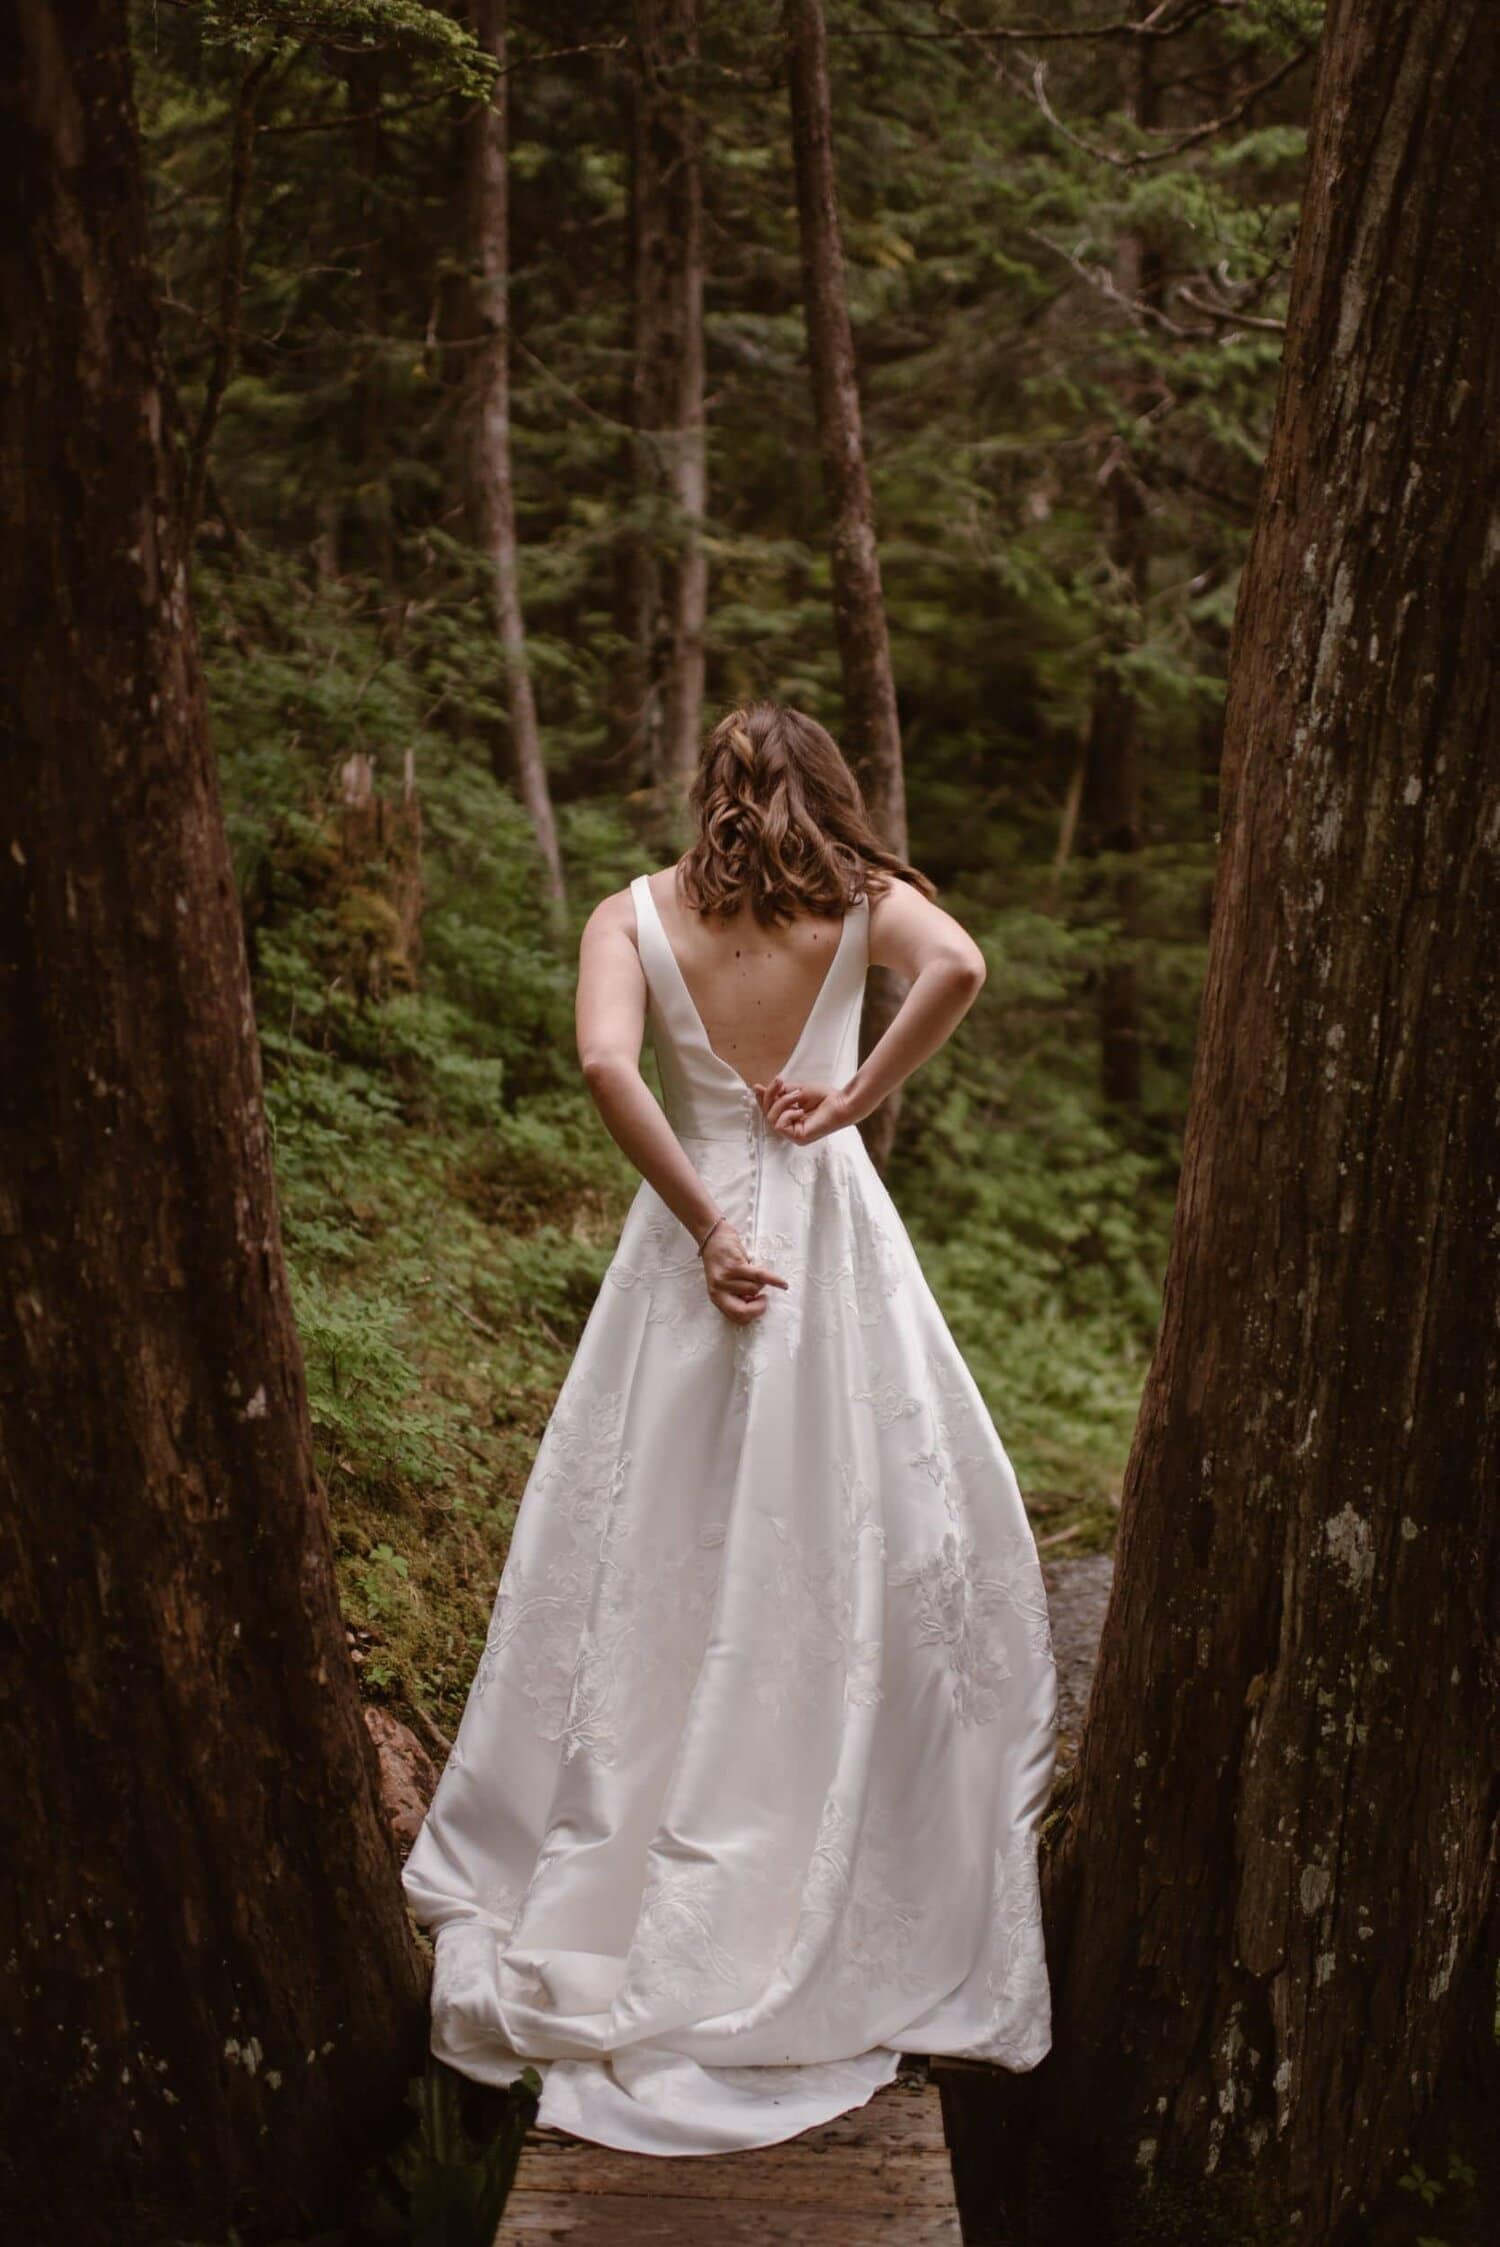 Bride zips up the back of her white wedding dress.